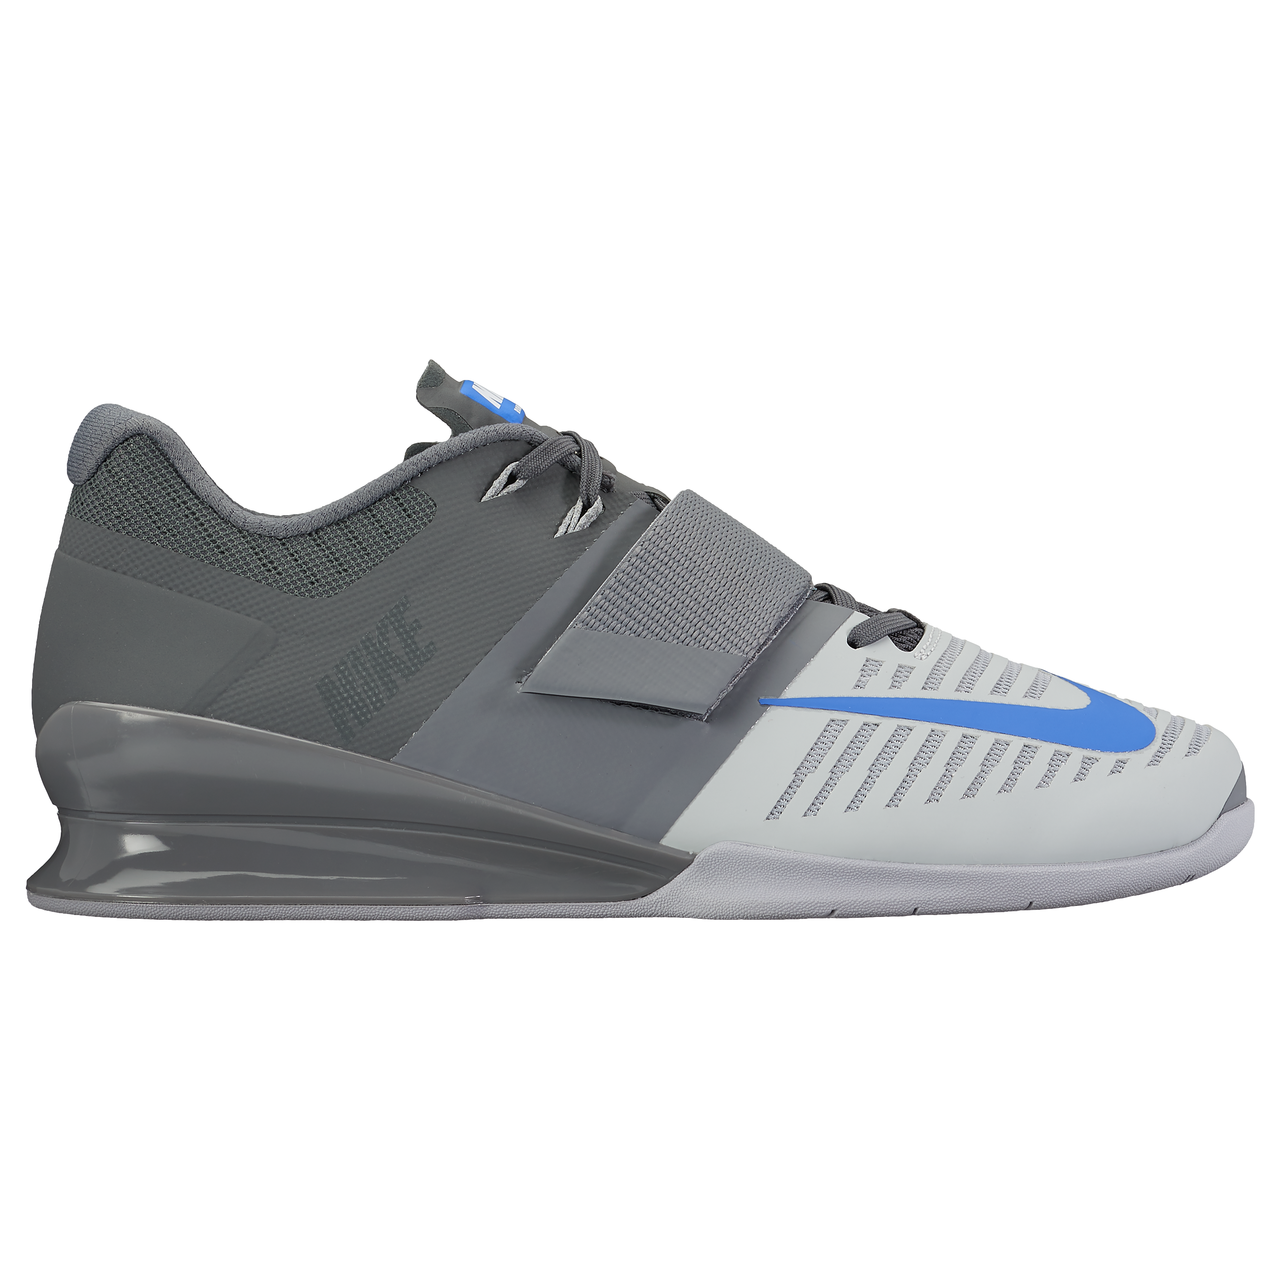 bf1e98ba0c25 Nike Romaleos 3 Weightlifting Shoes - Cool Grey RCR BL Wolf Grey